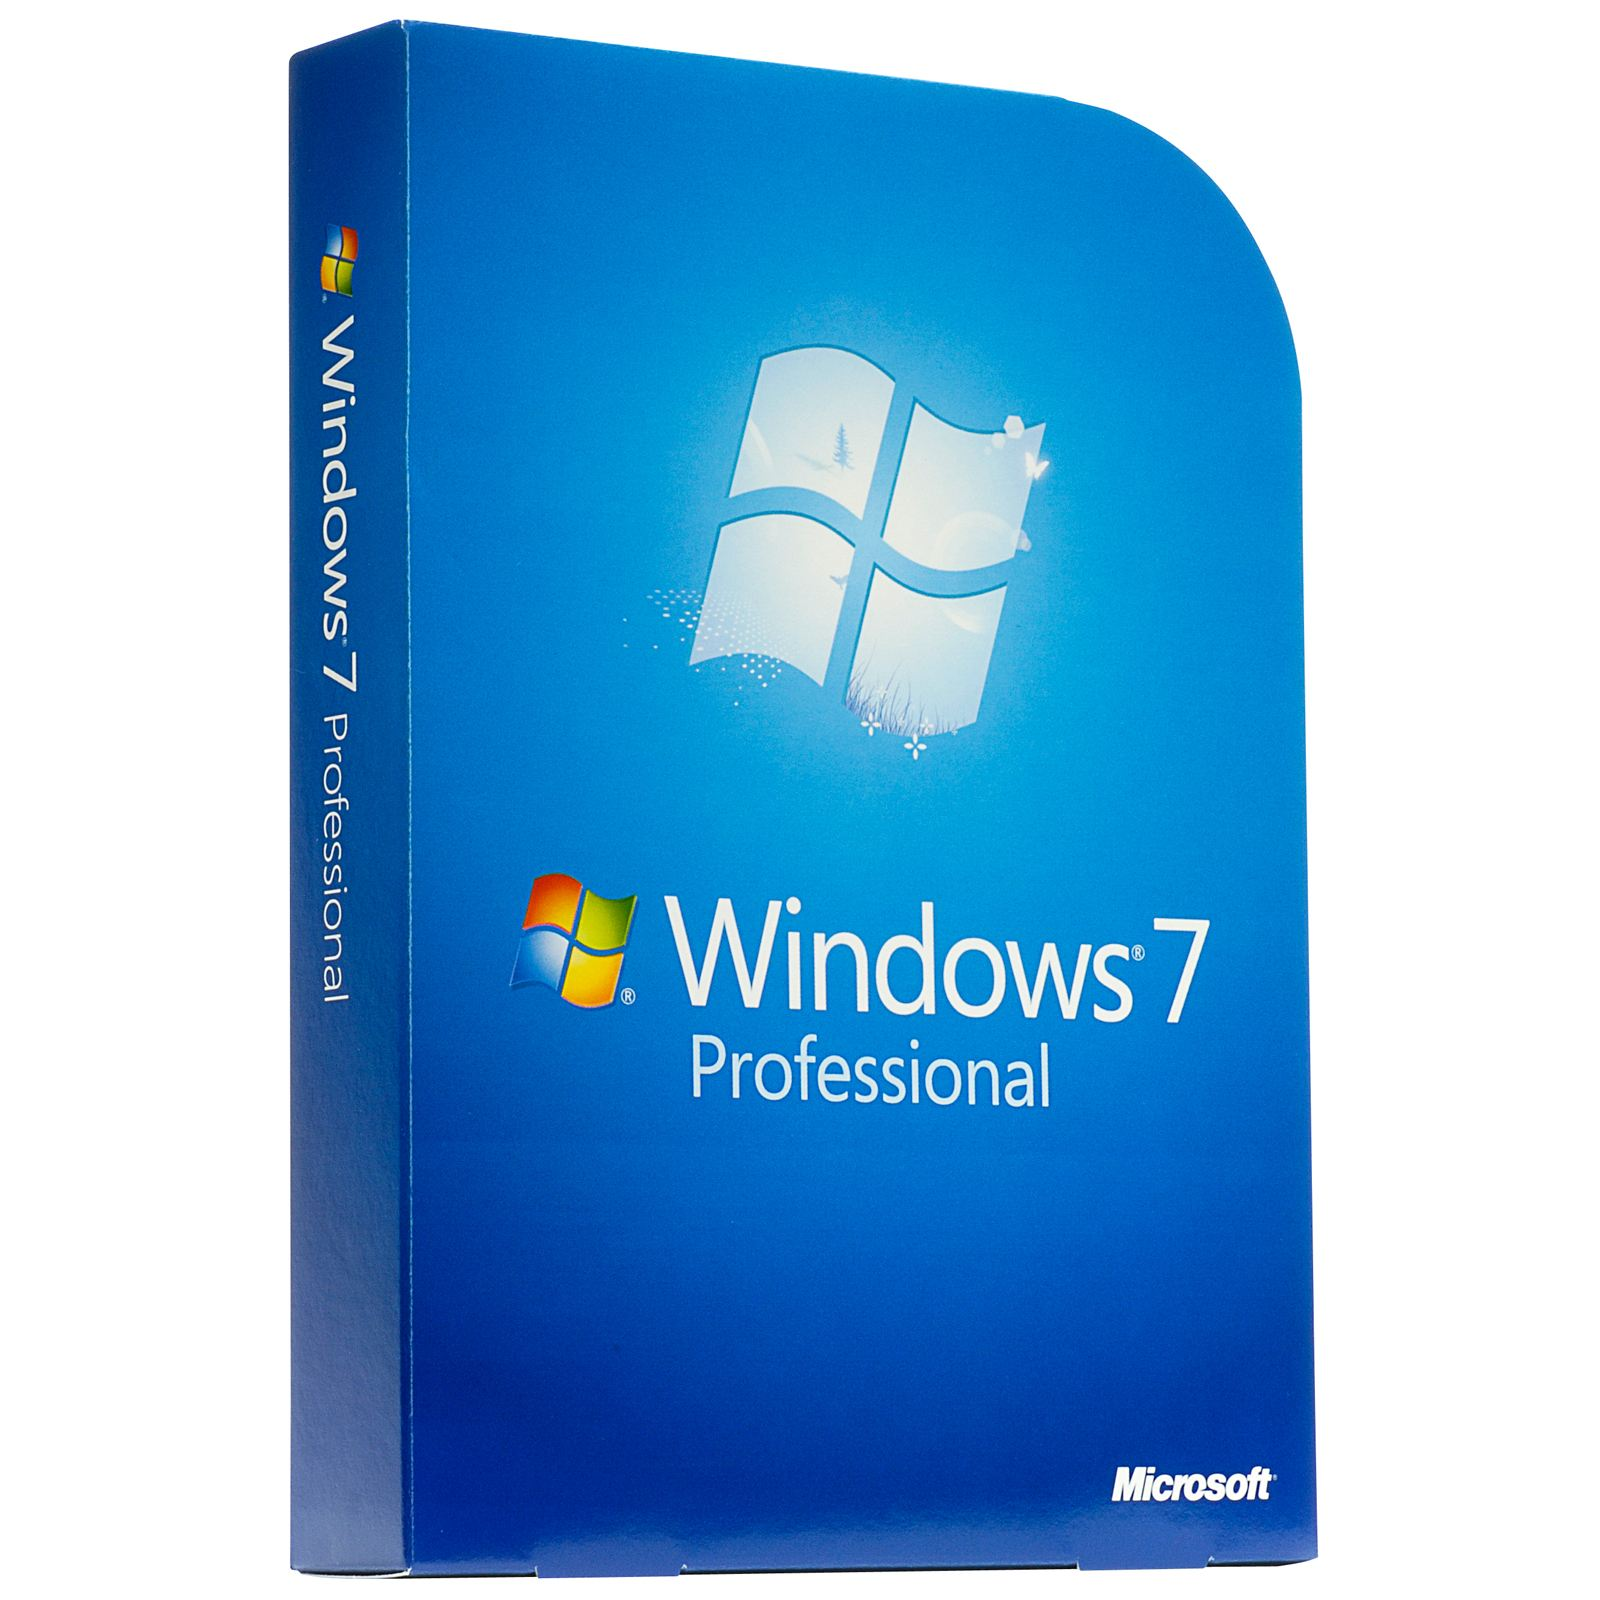 product key windows 7 home premium 64 bit keygen